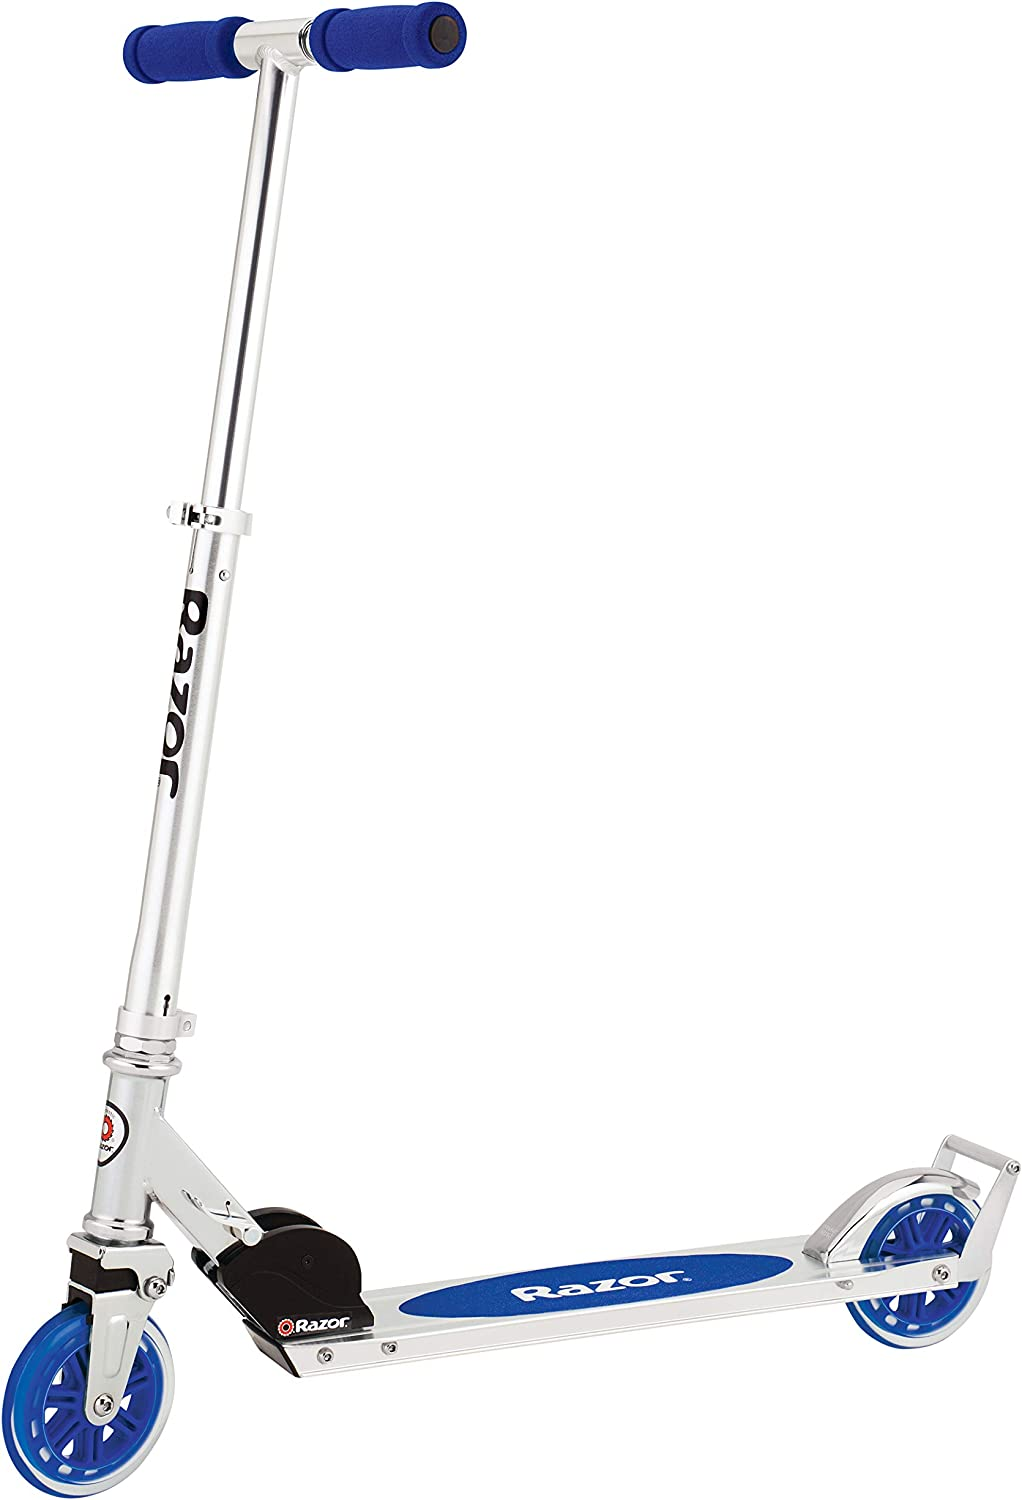 3. Razor A3 Kick Scooter